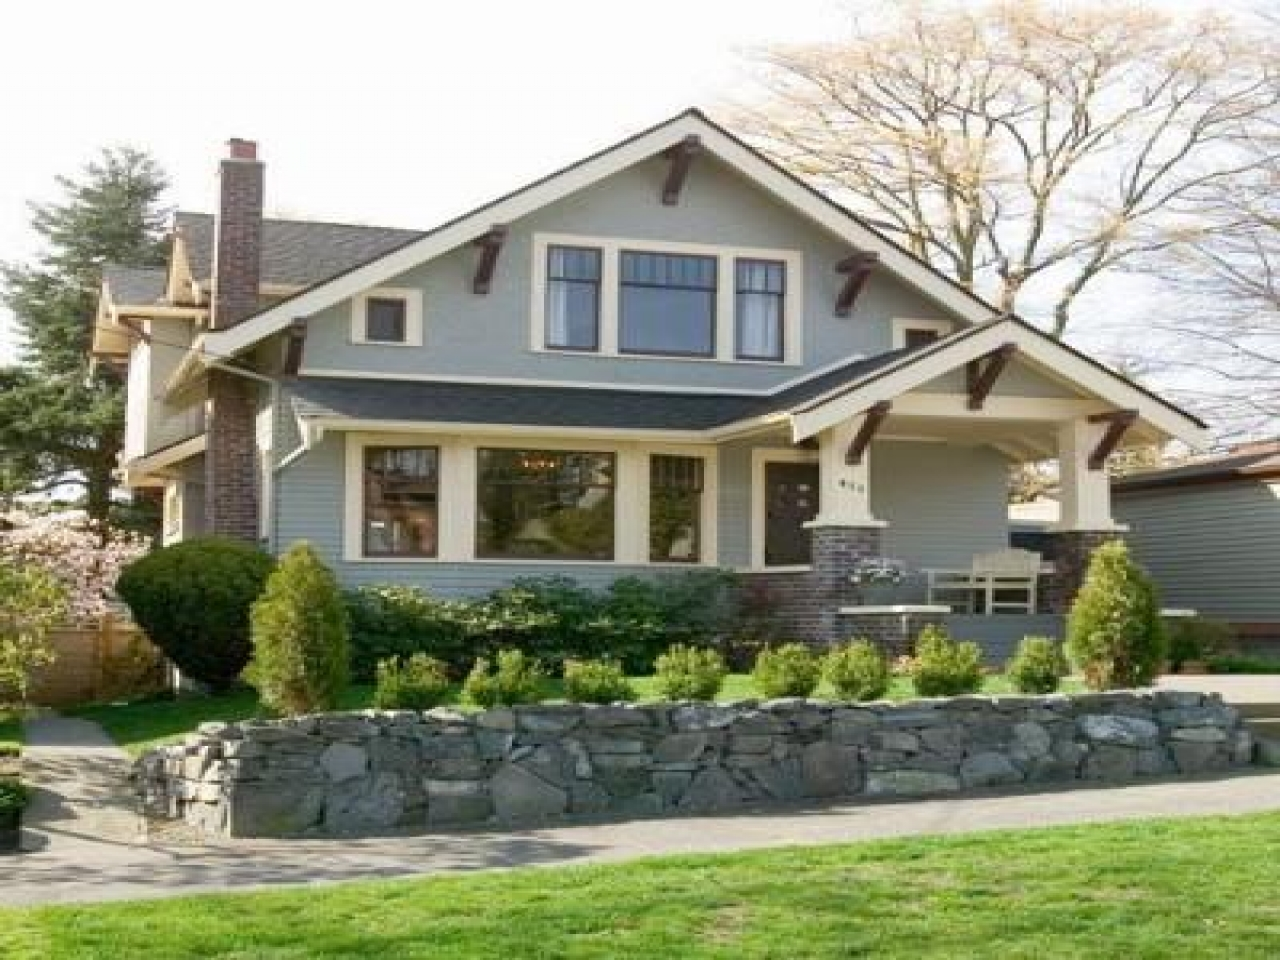 Old Style Bungalow Home Plans Craftsman Bungalow Style Home Exterior Craftsman House Photos